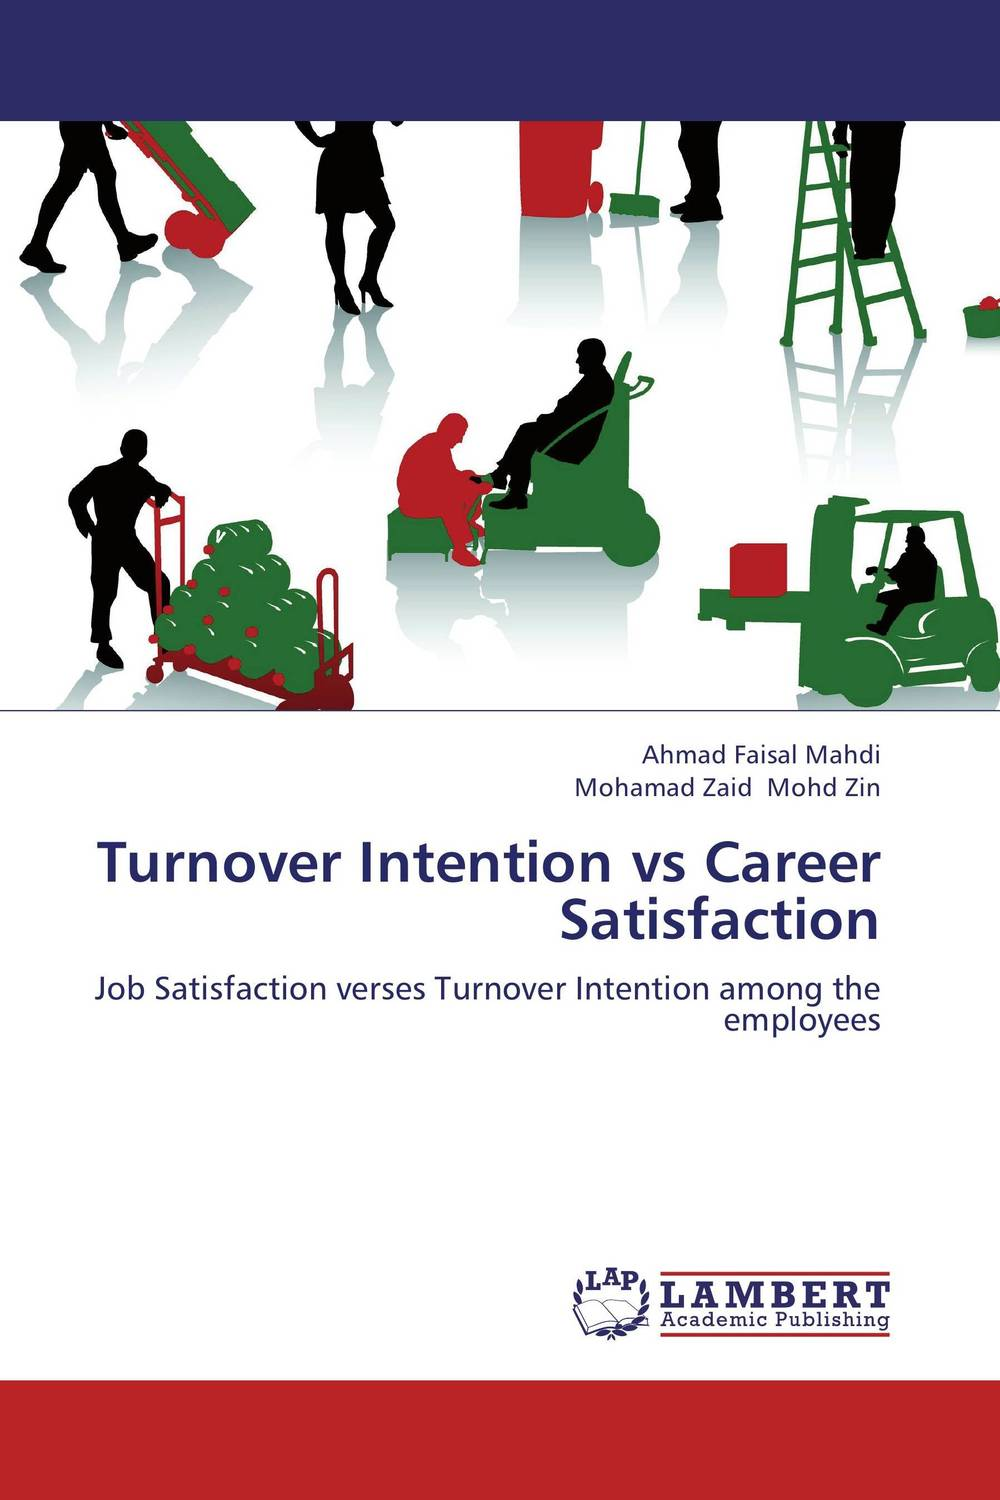 Turnover Intention vs Career Satisfaction impact of job satisfaction on turnover intentions